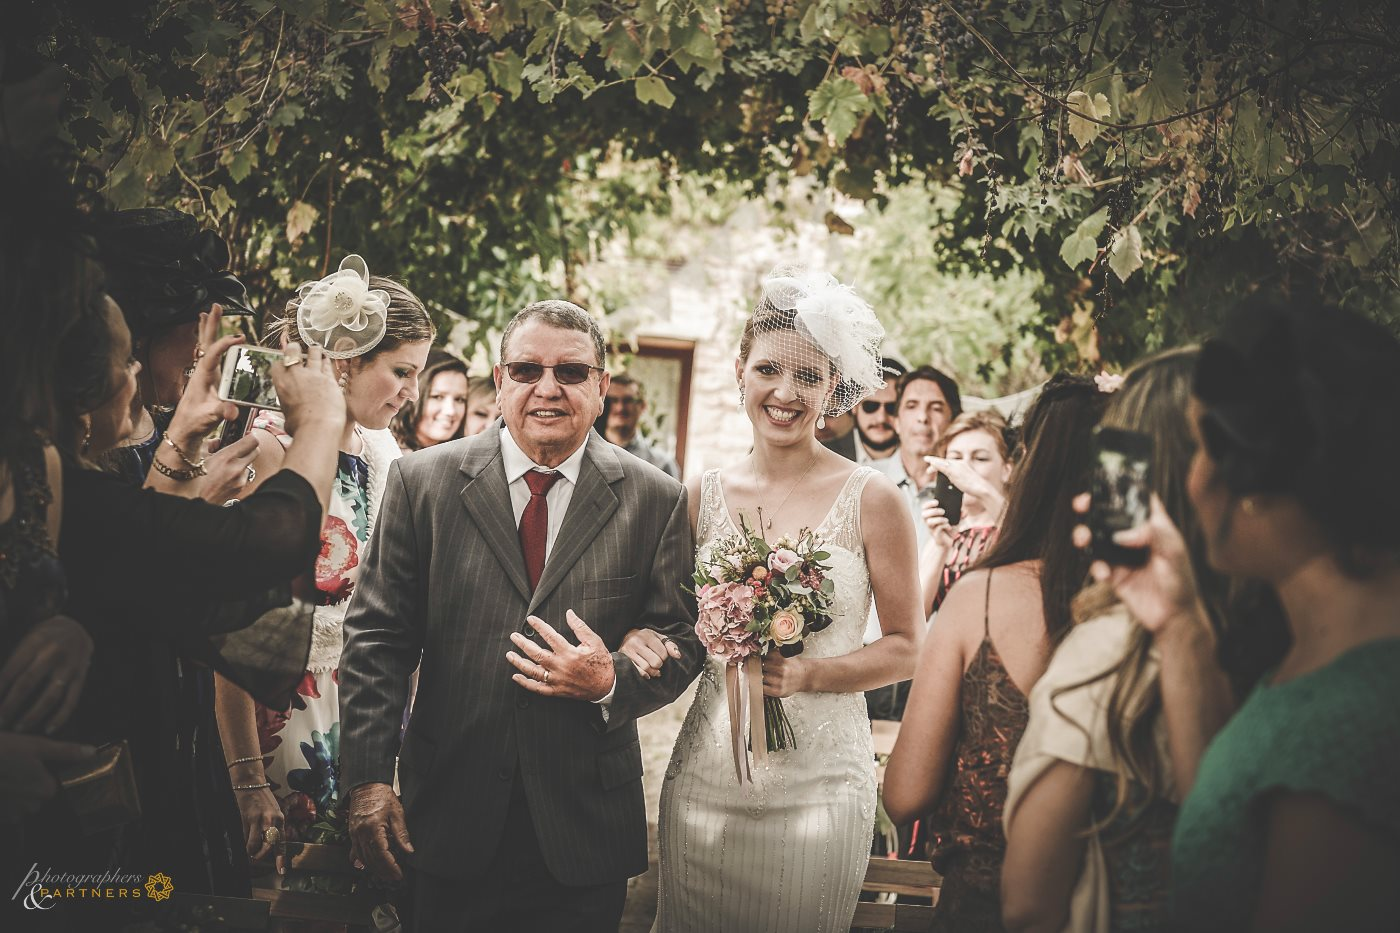 wedding_photos_borgo_petrognano_04.jpg